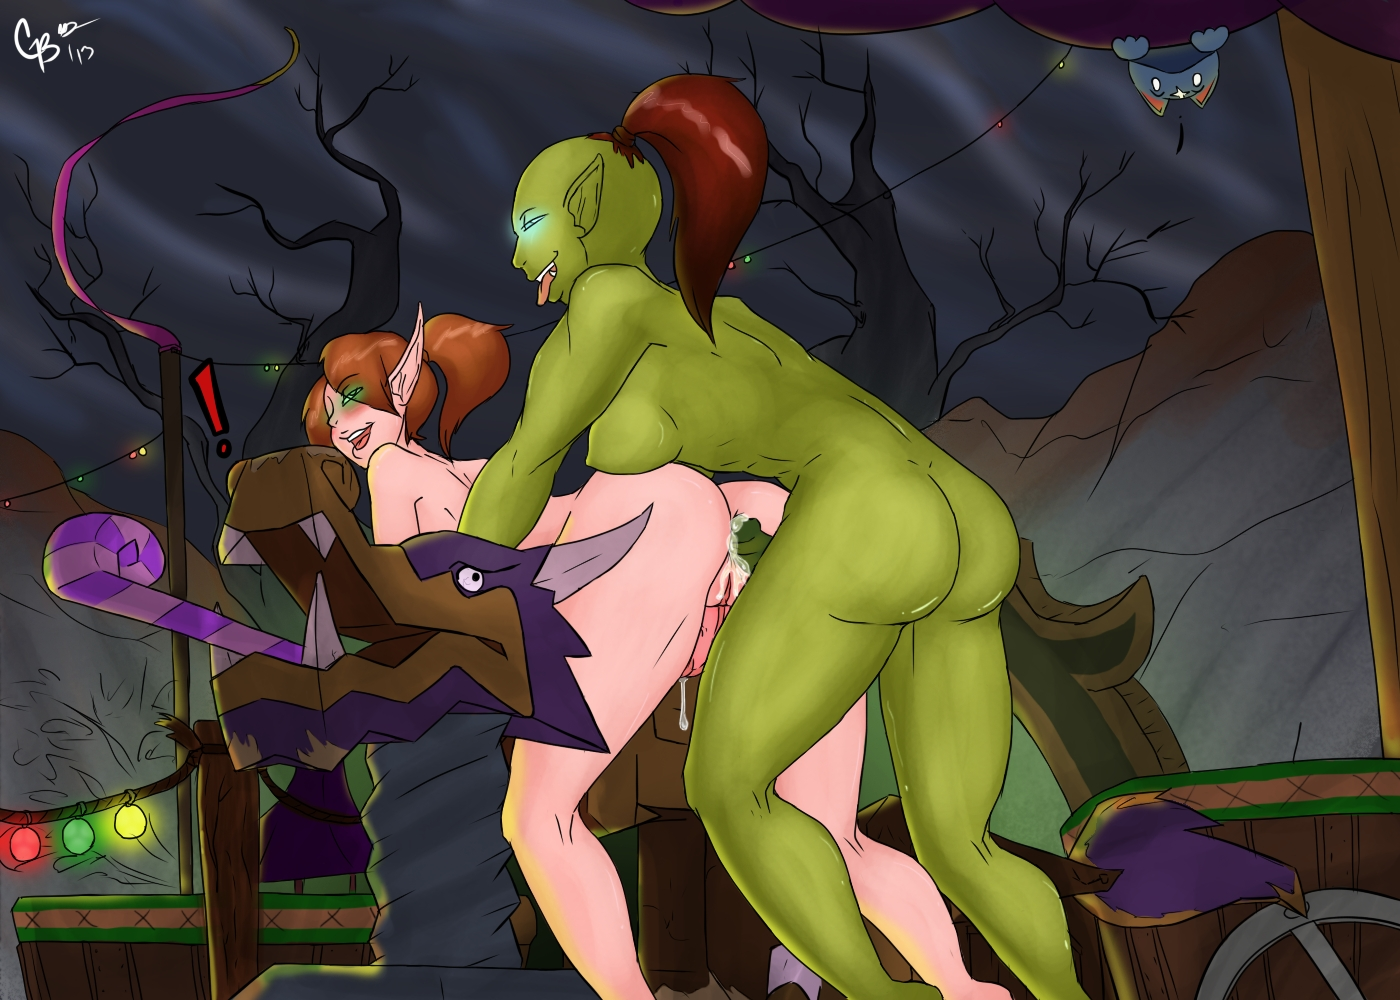 Elf orc erotica male hentai exploited movie